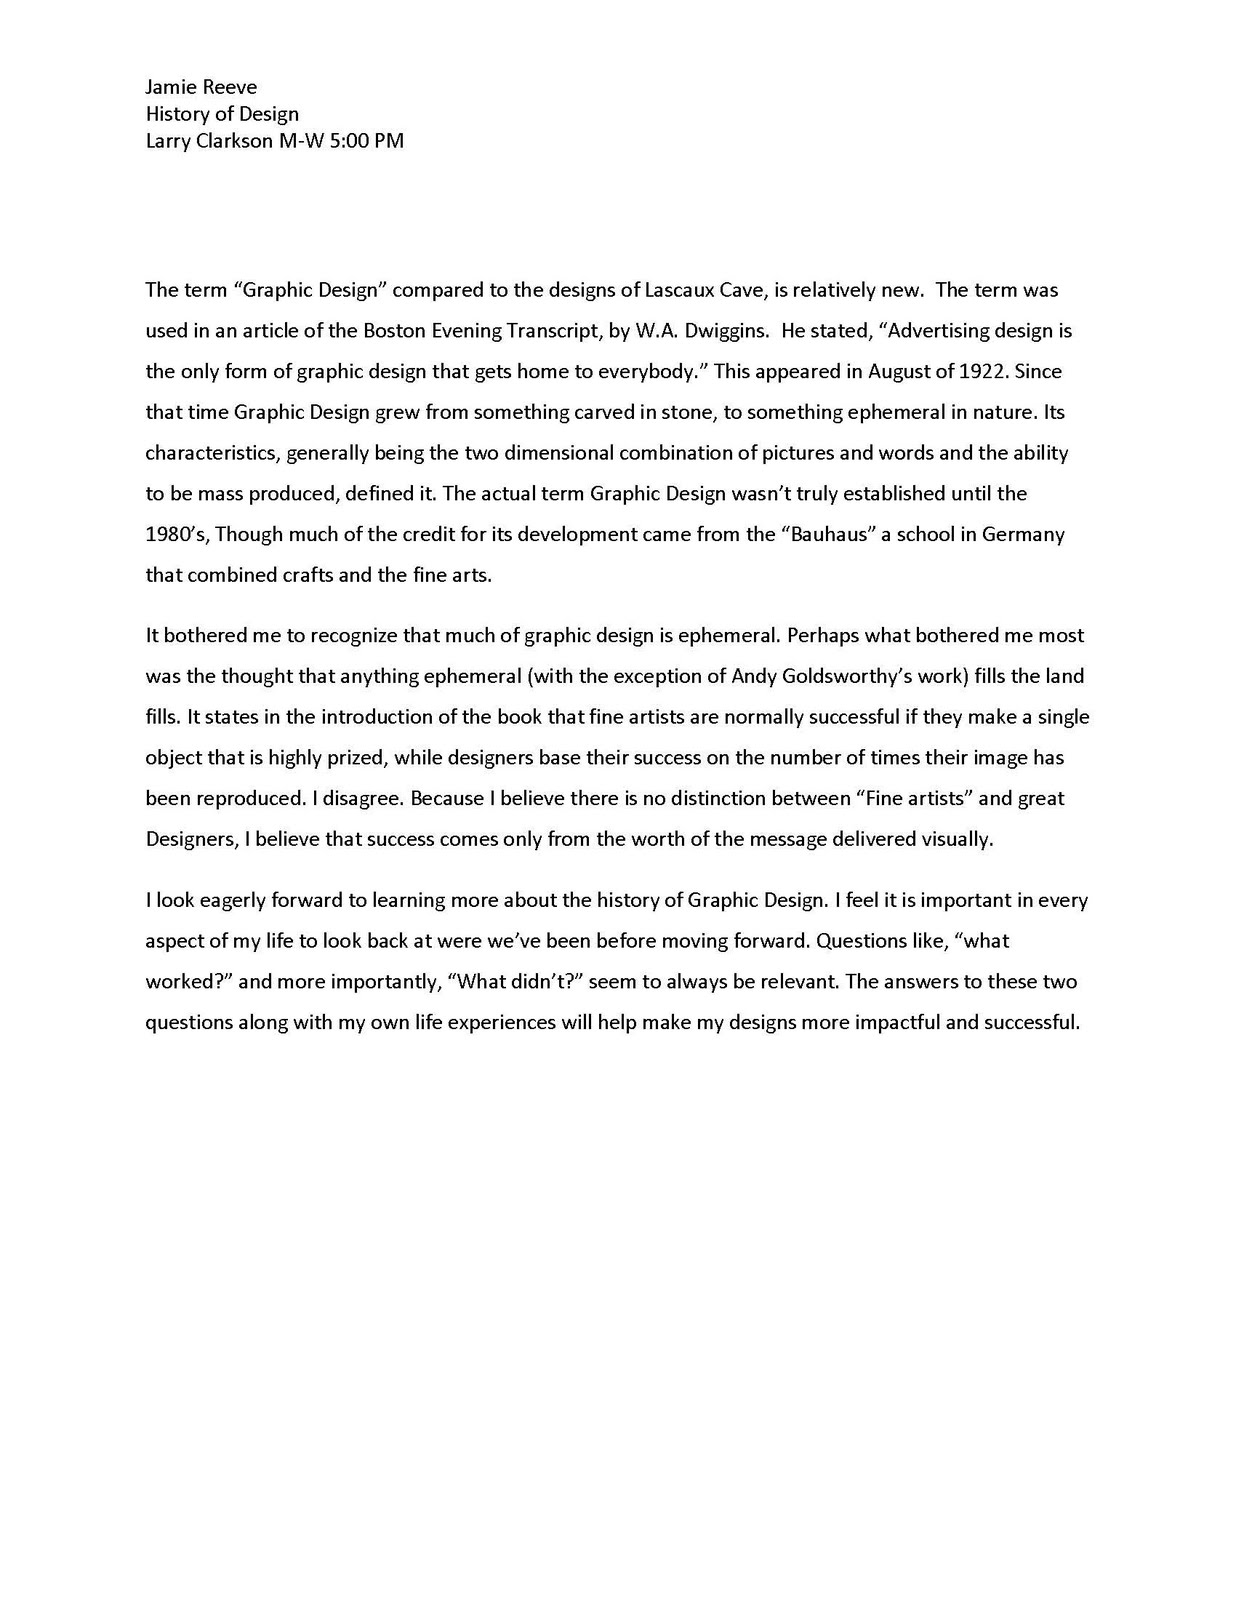 one page essays 5 easy steps on how to write a 250 words essay more writing tips and custom writing services you can find on   sources for video: http://www.